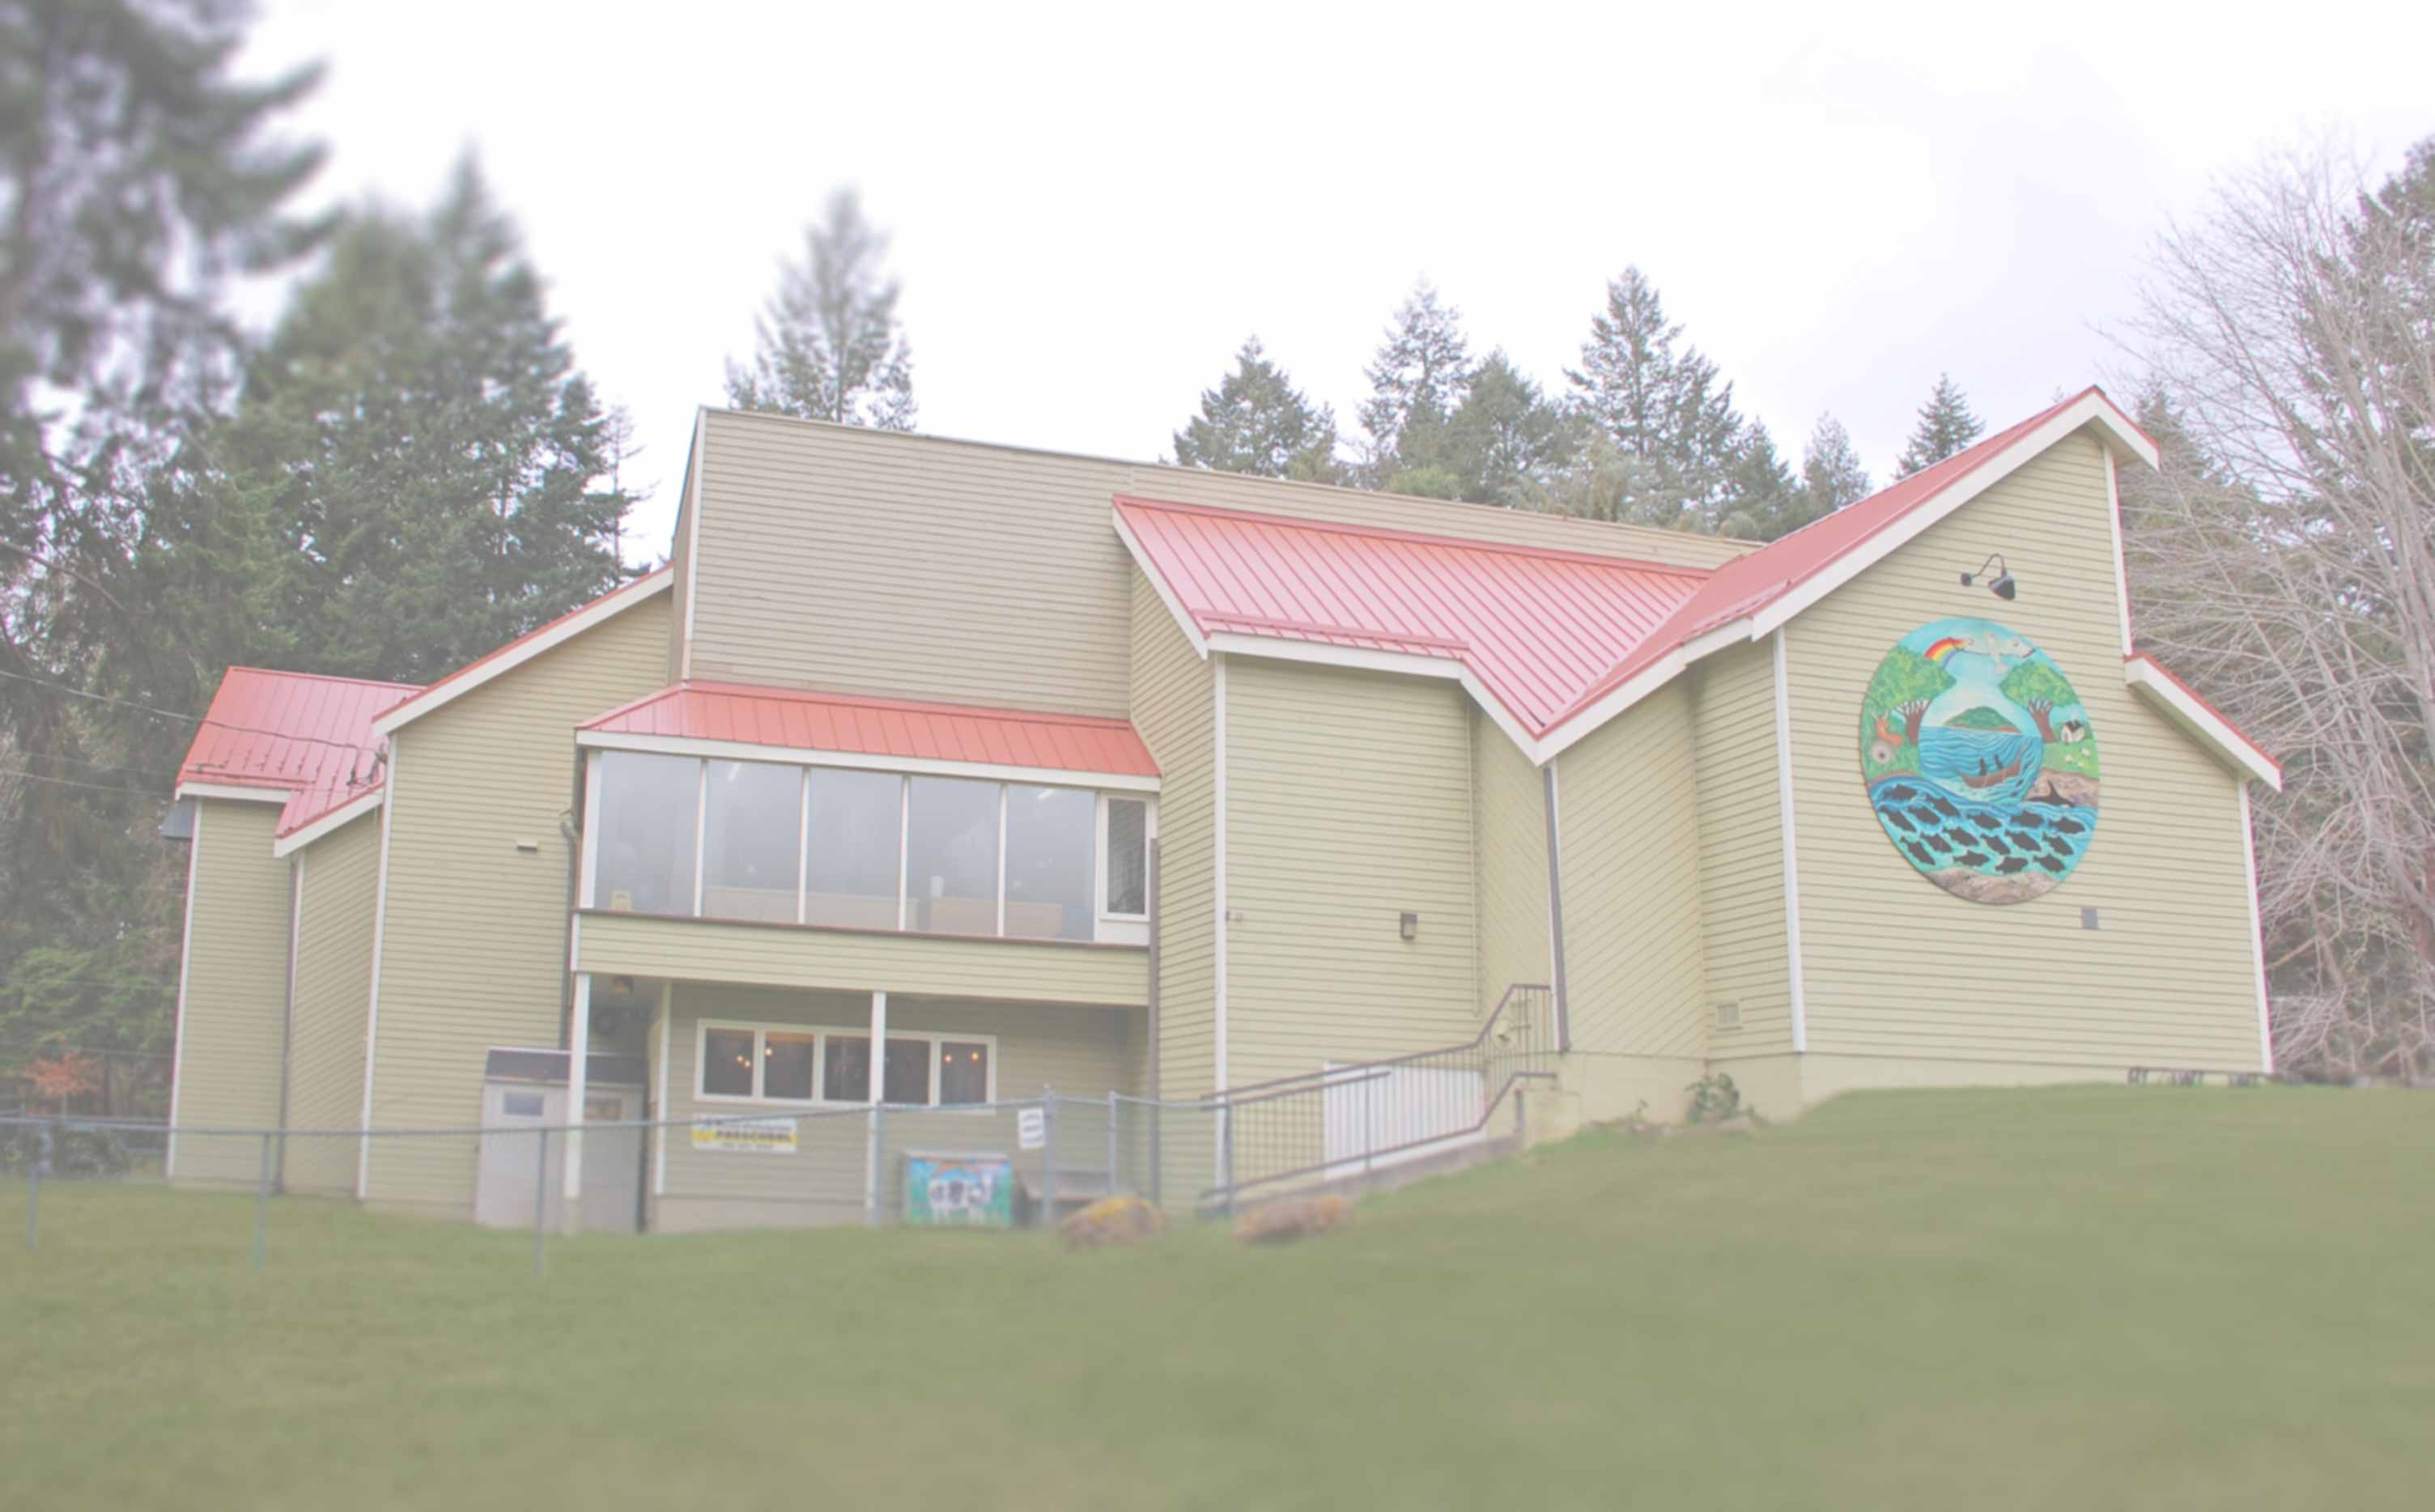 Image of the Gabriola Island Community Hall